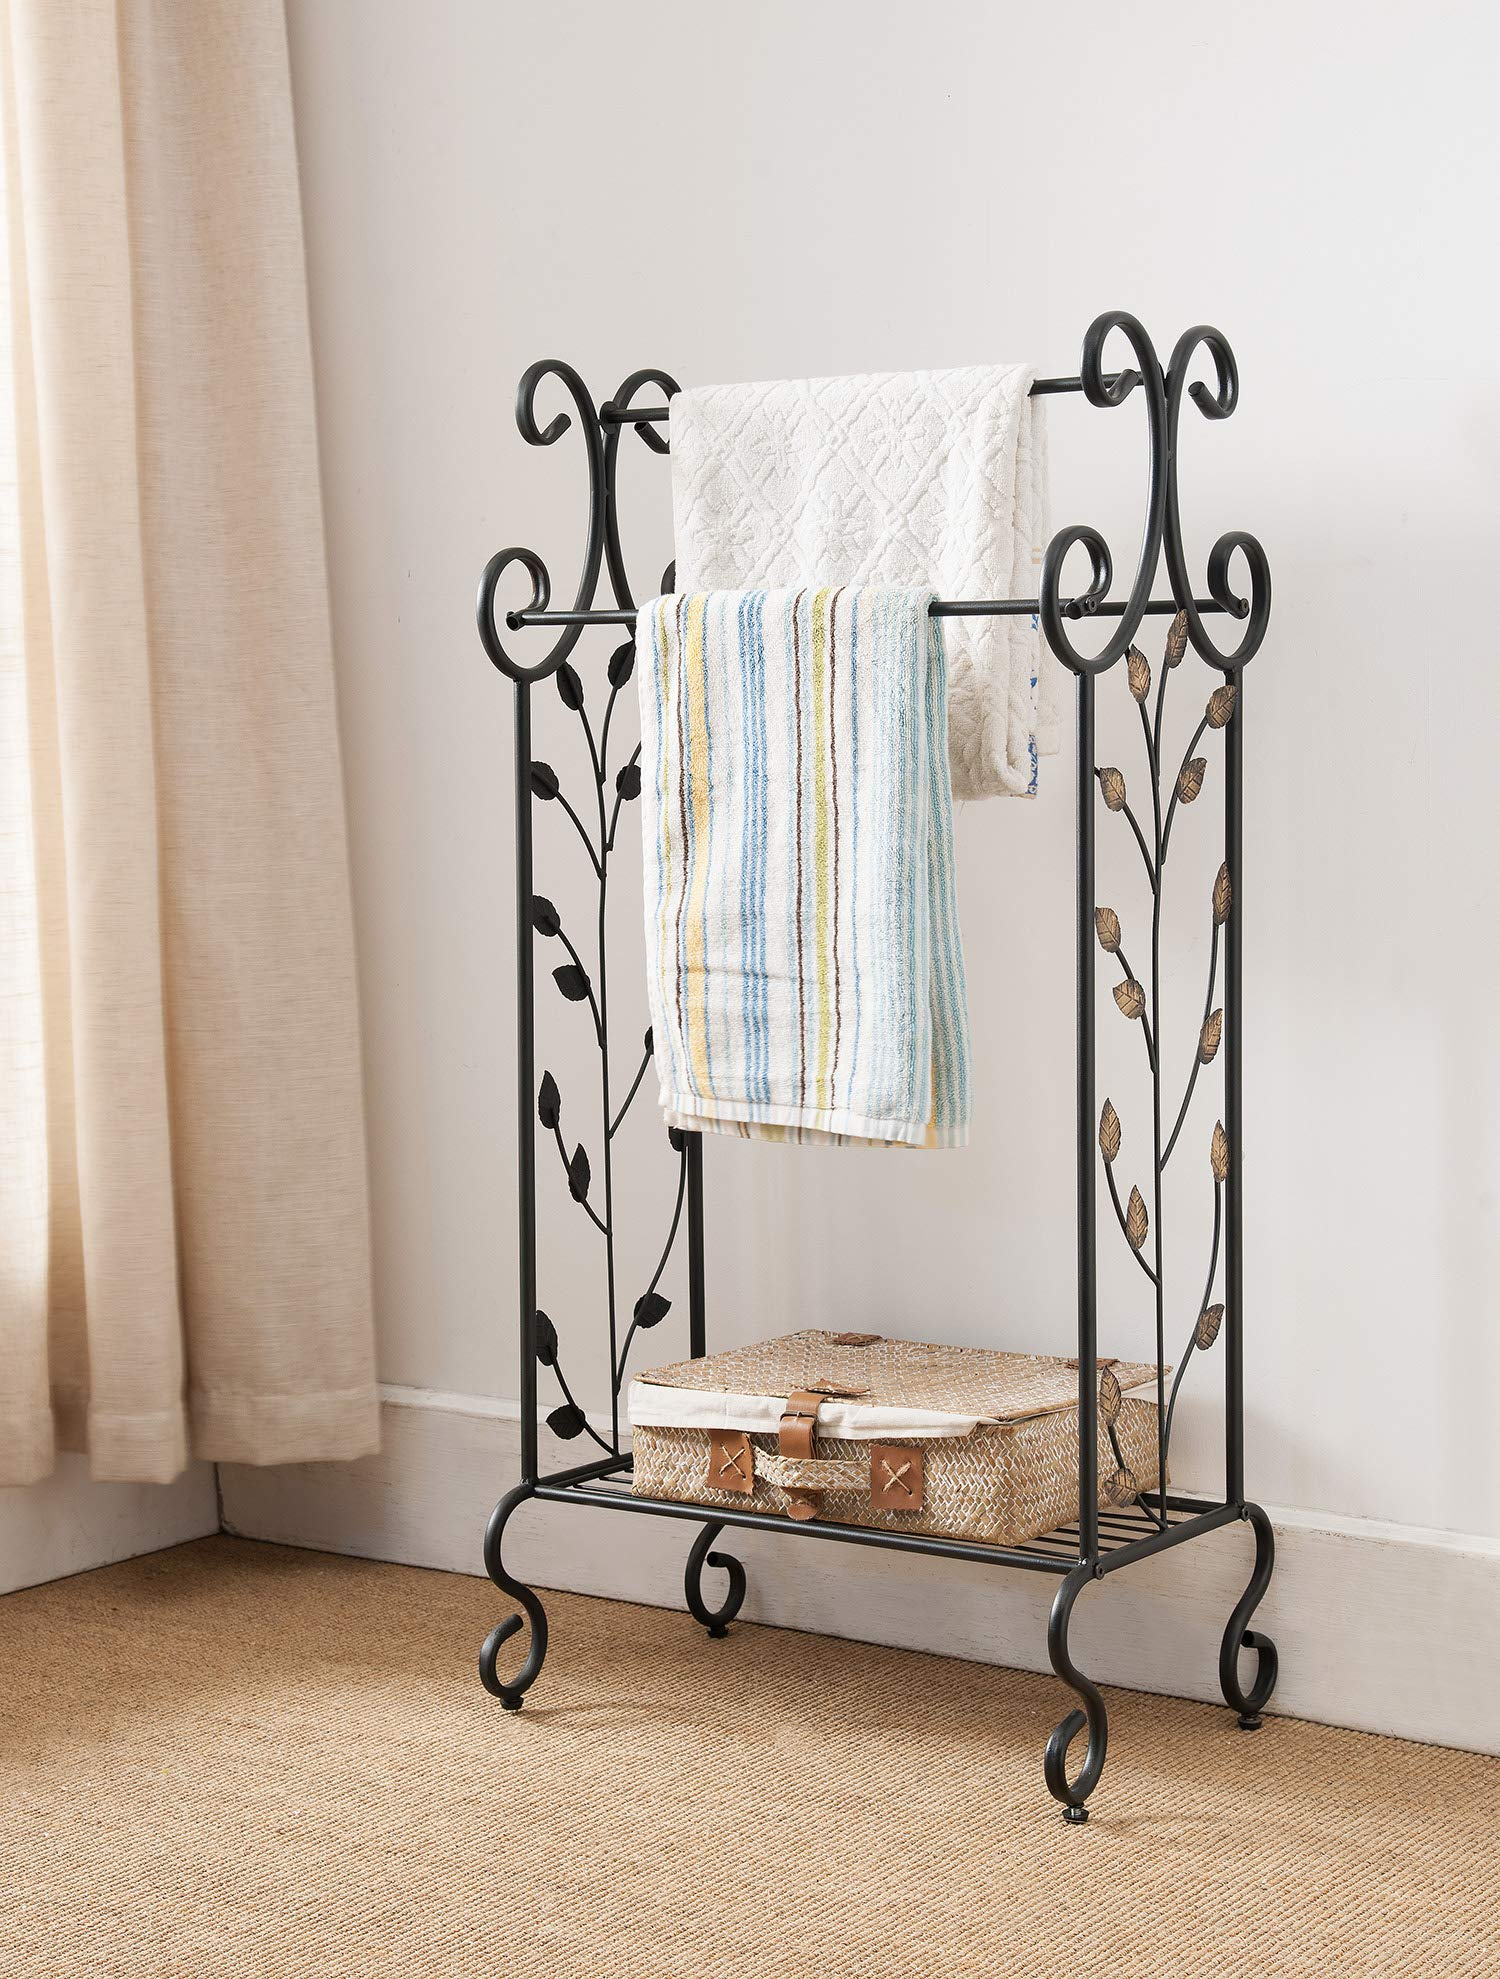 Kings Brand Furniture Black Metal with Gold Leaf Free Towel Rack Stand with Shelf by Kings Brand Furniture